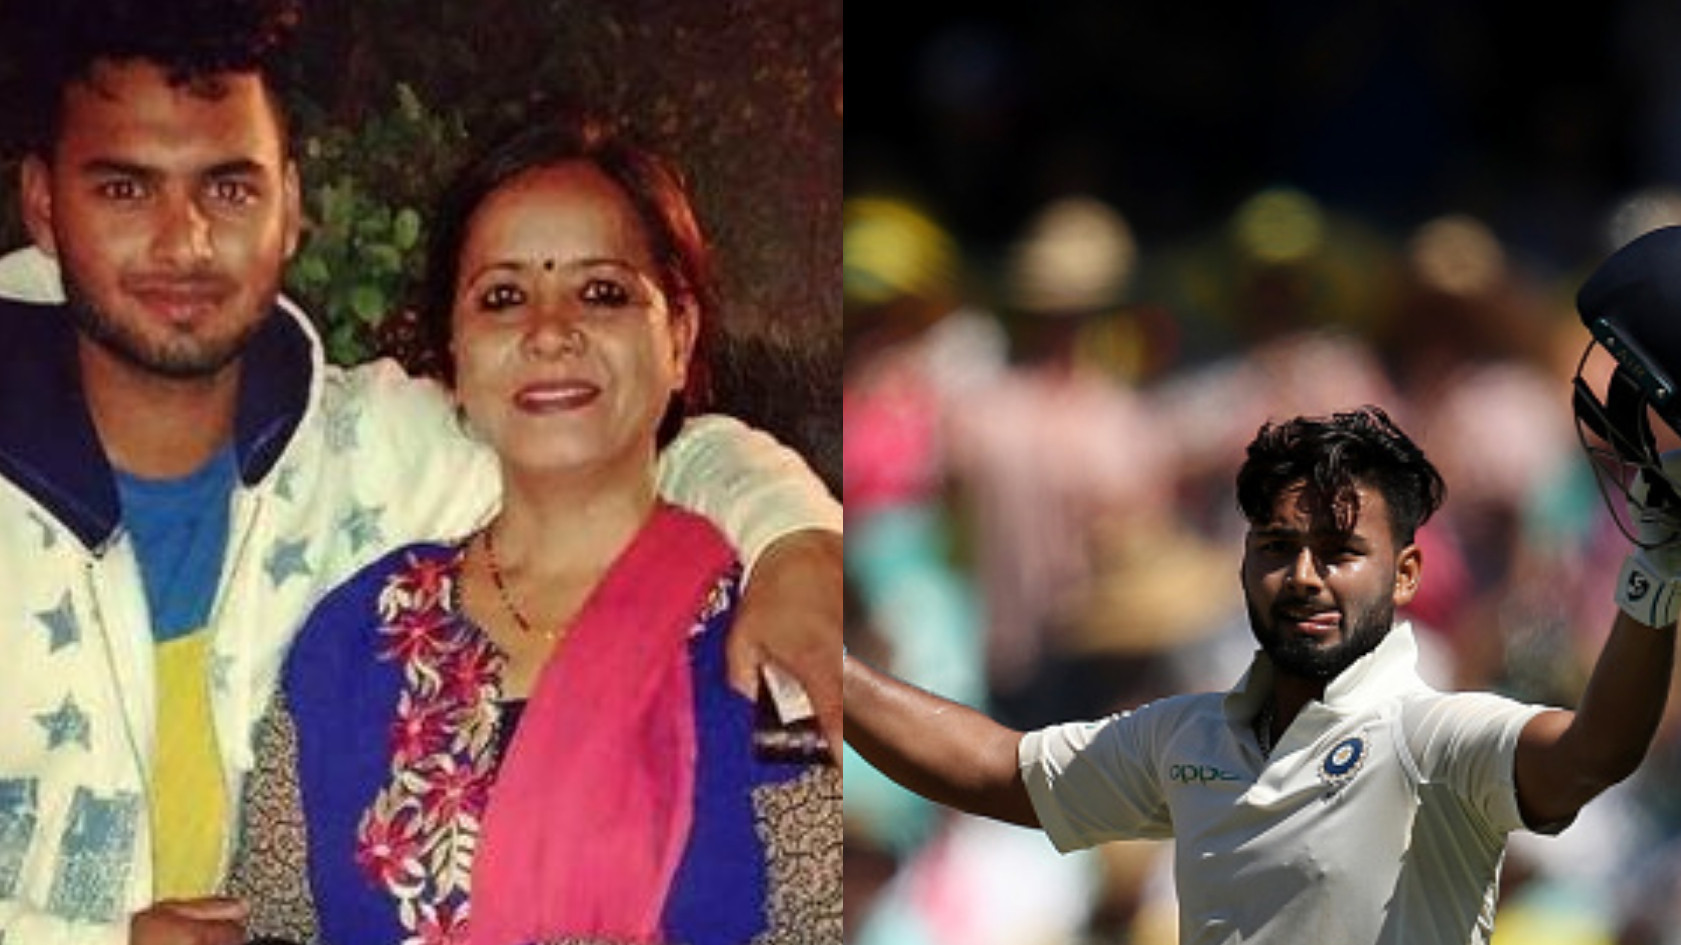 Rishabh Pant gifts a Test century in Australia to his mother on her birthday today